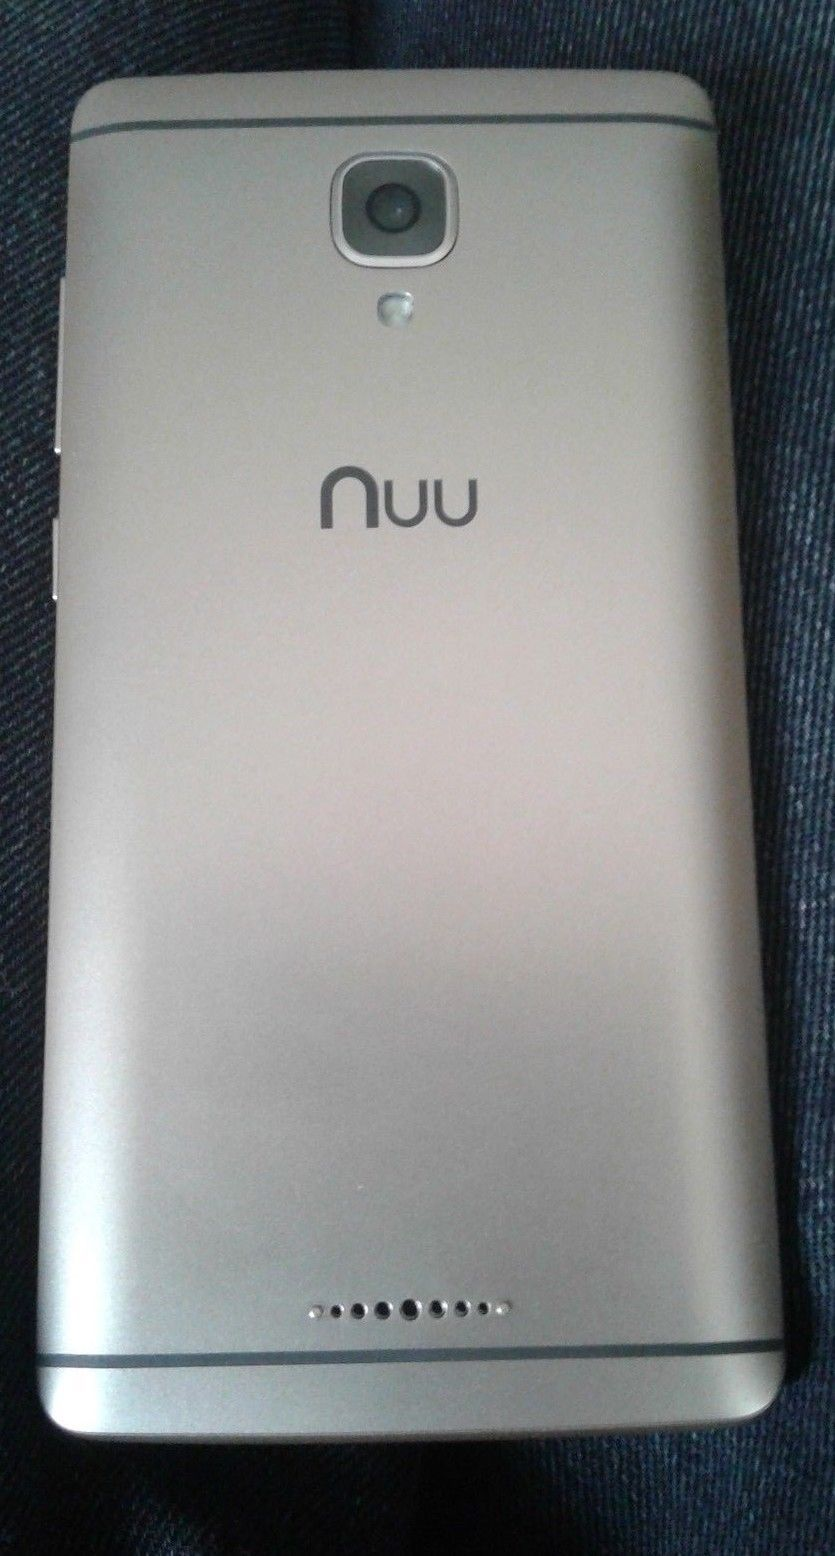 44 35 | Unlocked GSM T-Mobile NUU A3 4G Cell Phone - Gold